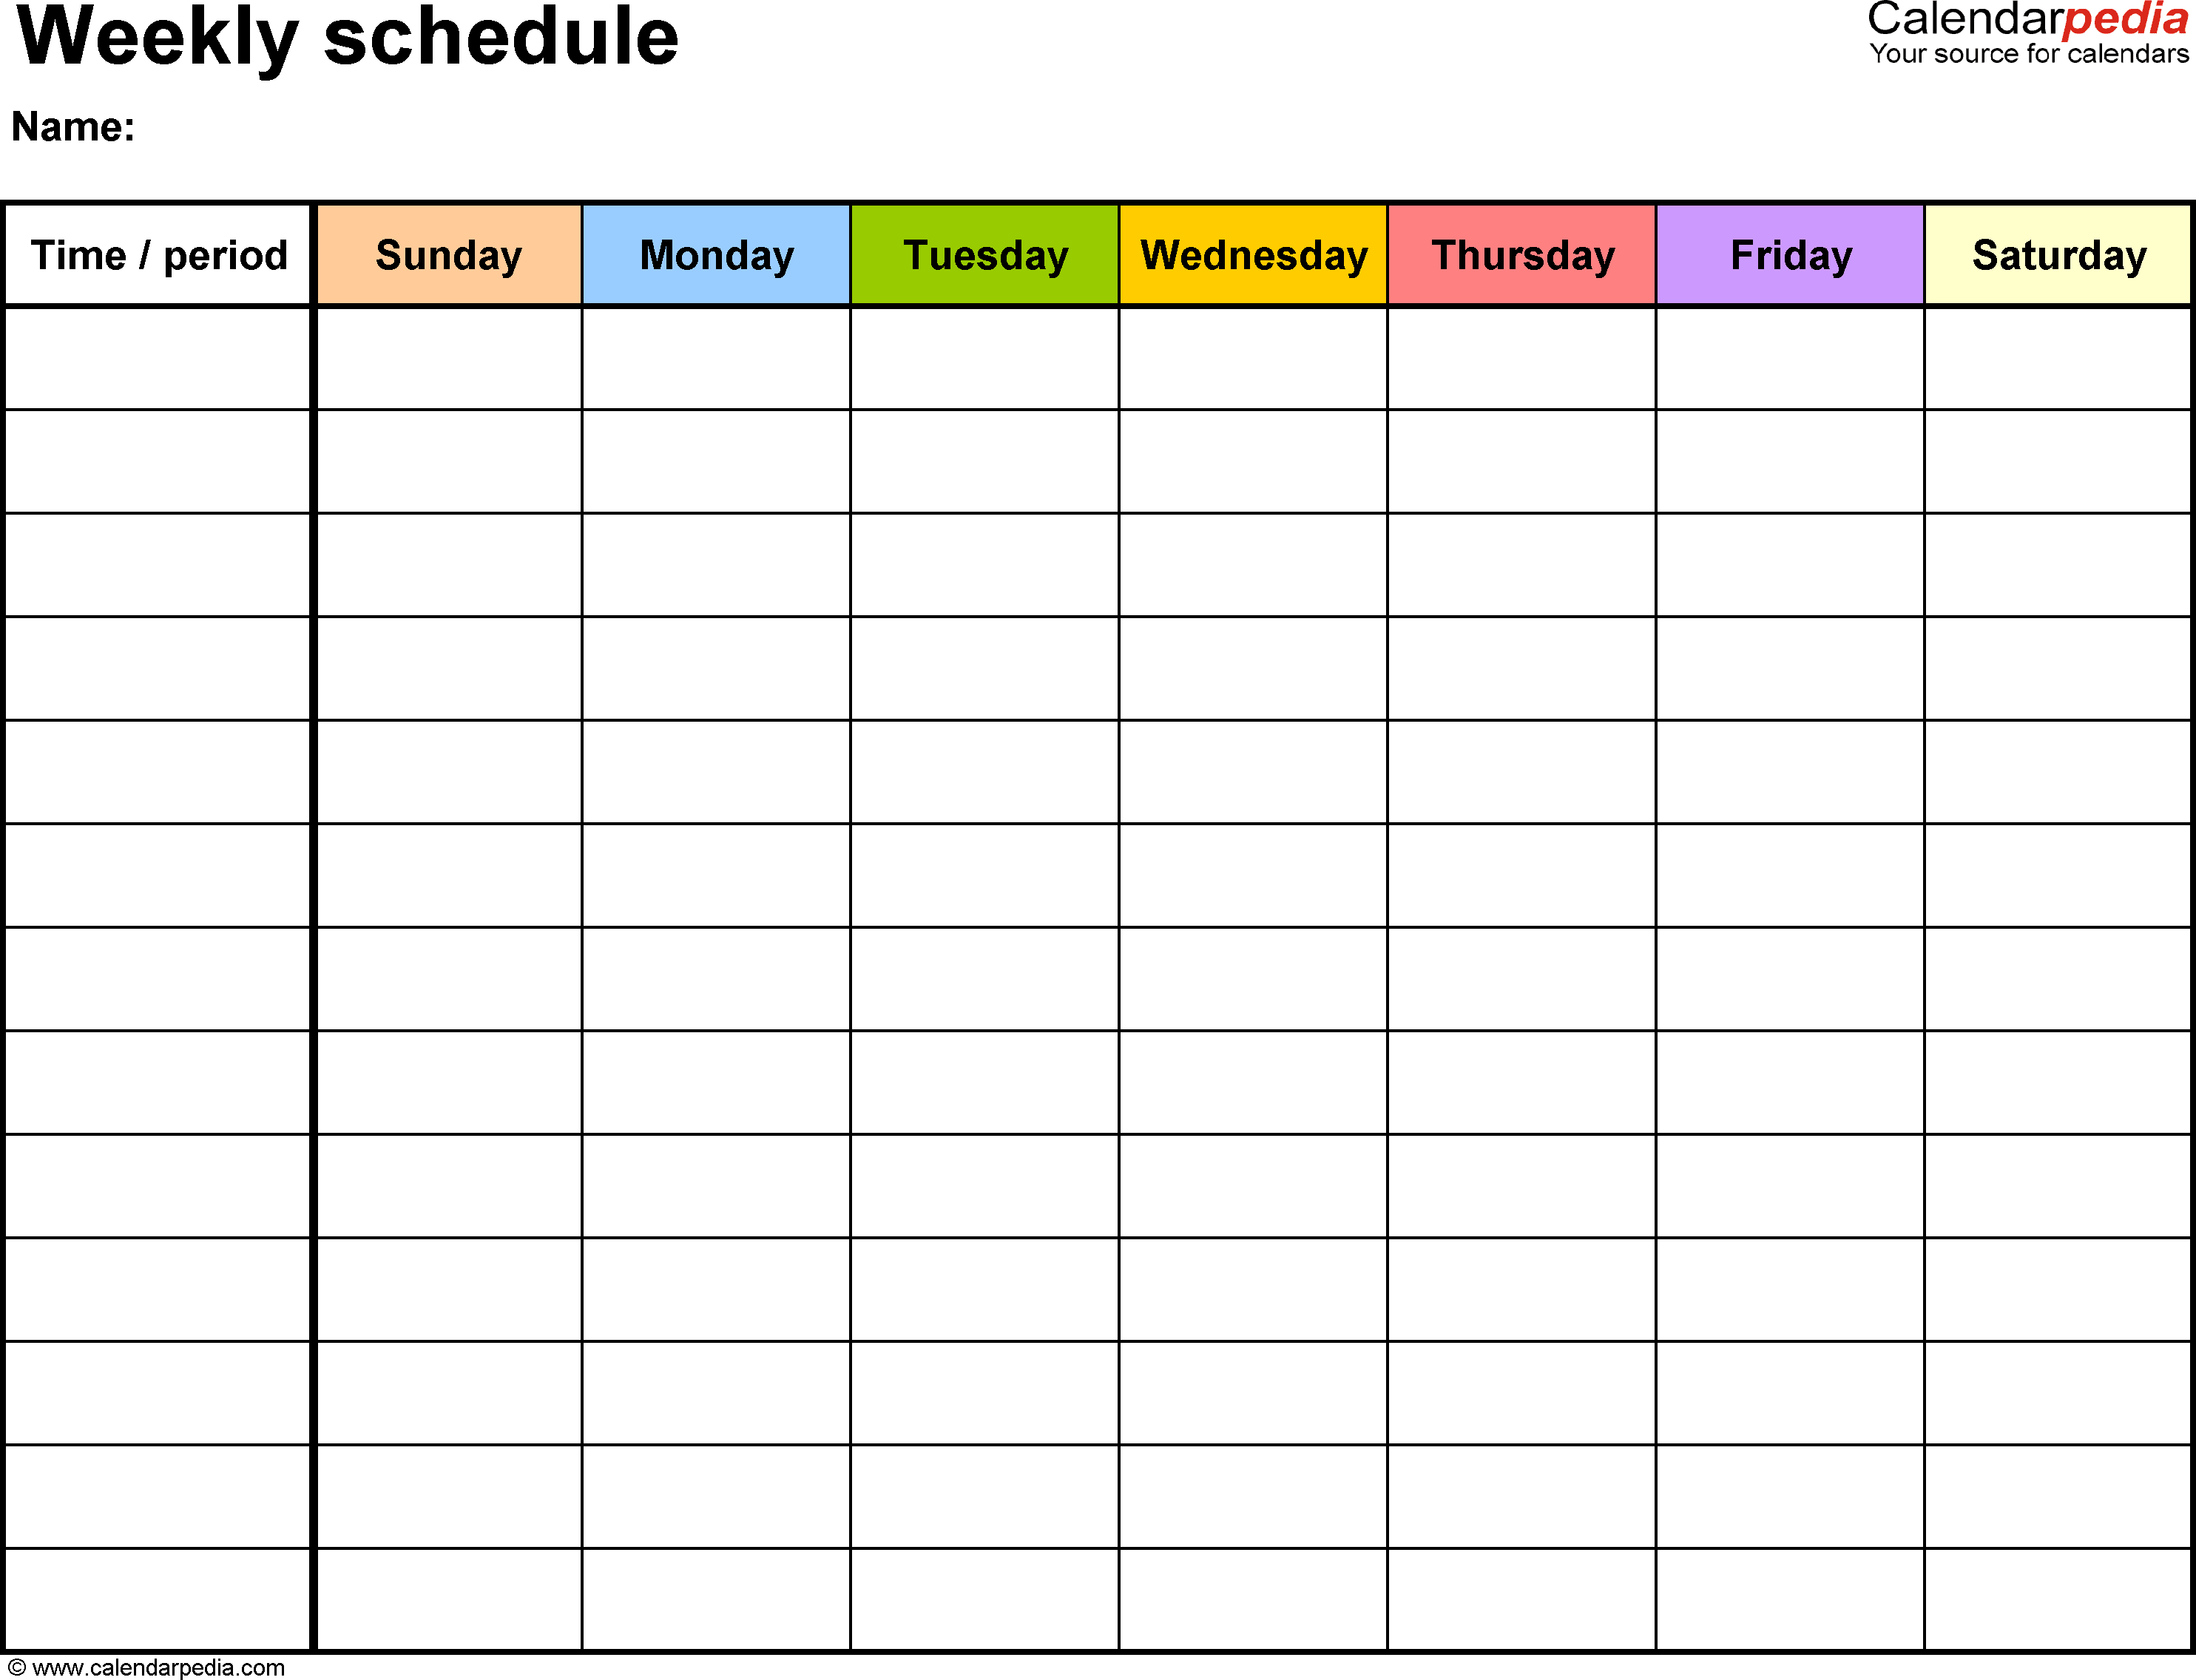 Free Weekly Schedule Templates For Pdf - 18 Templates - Free Printable Blank Weekly Schedule